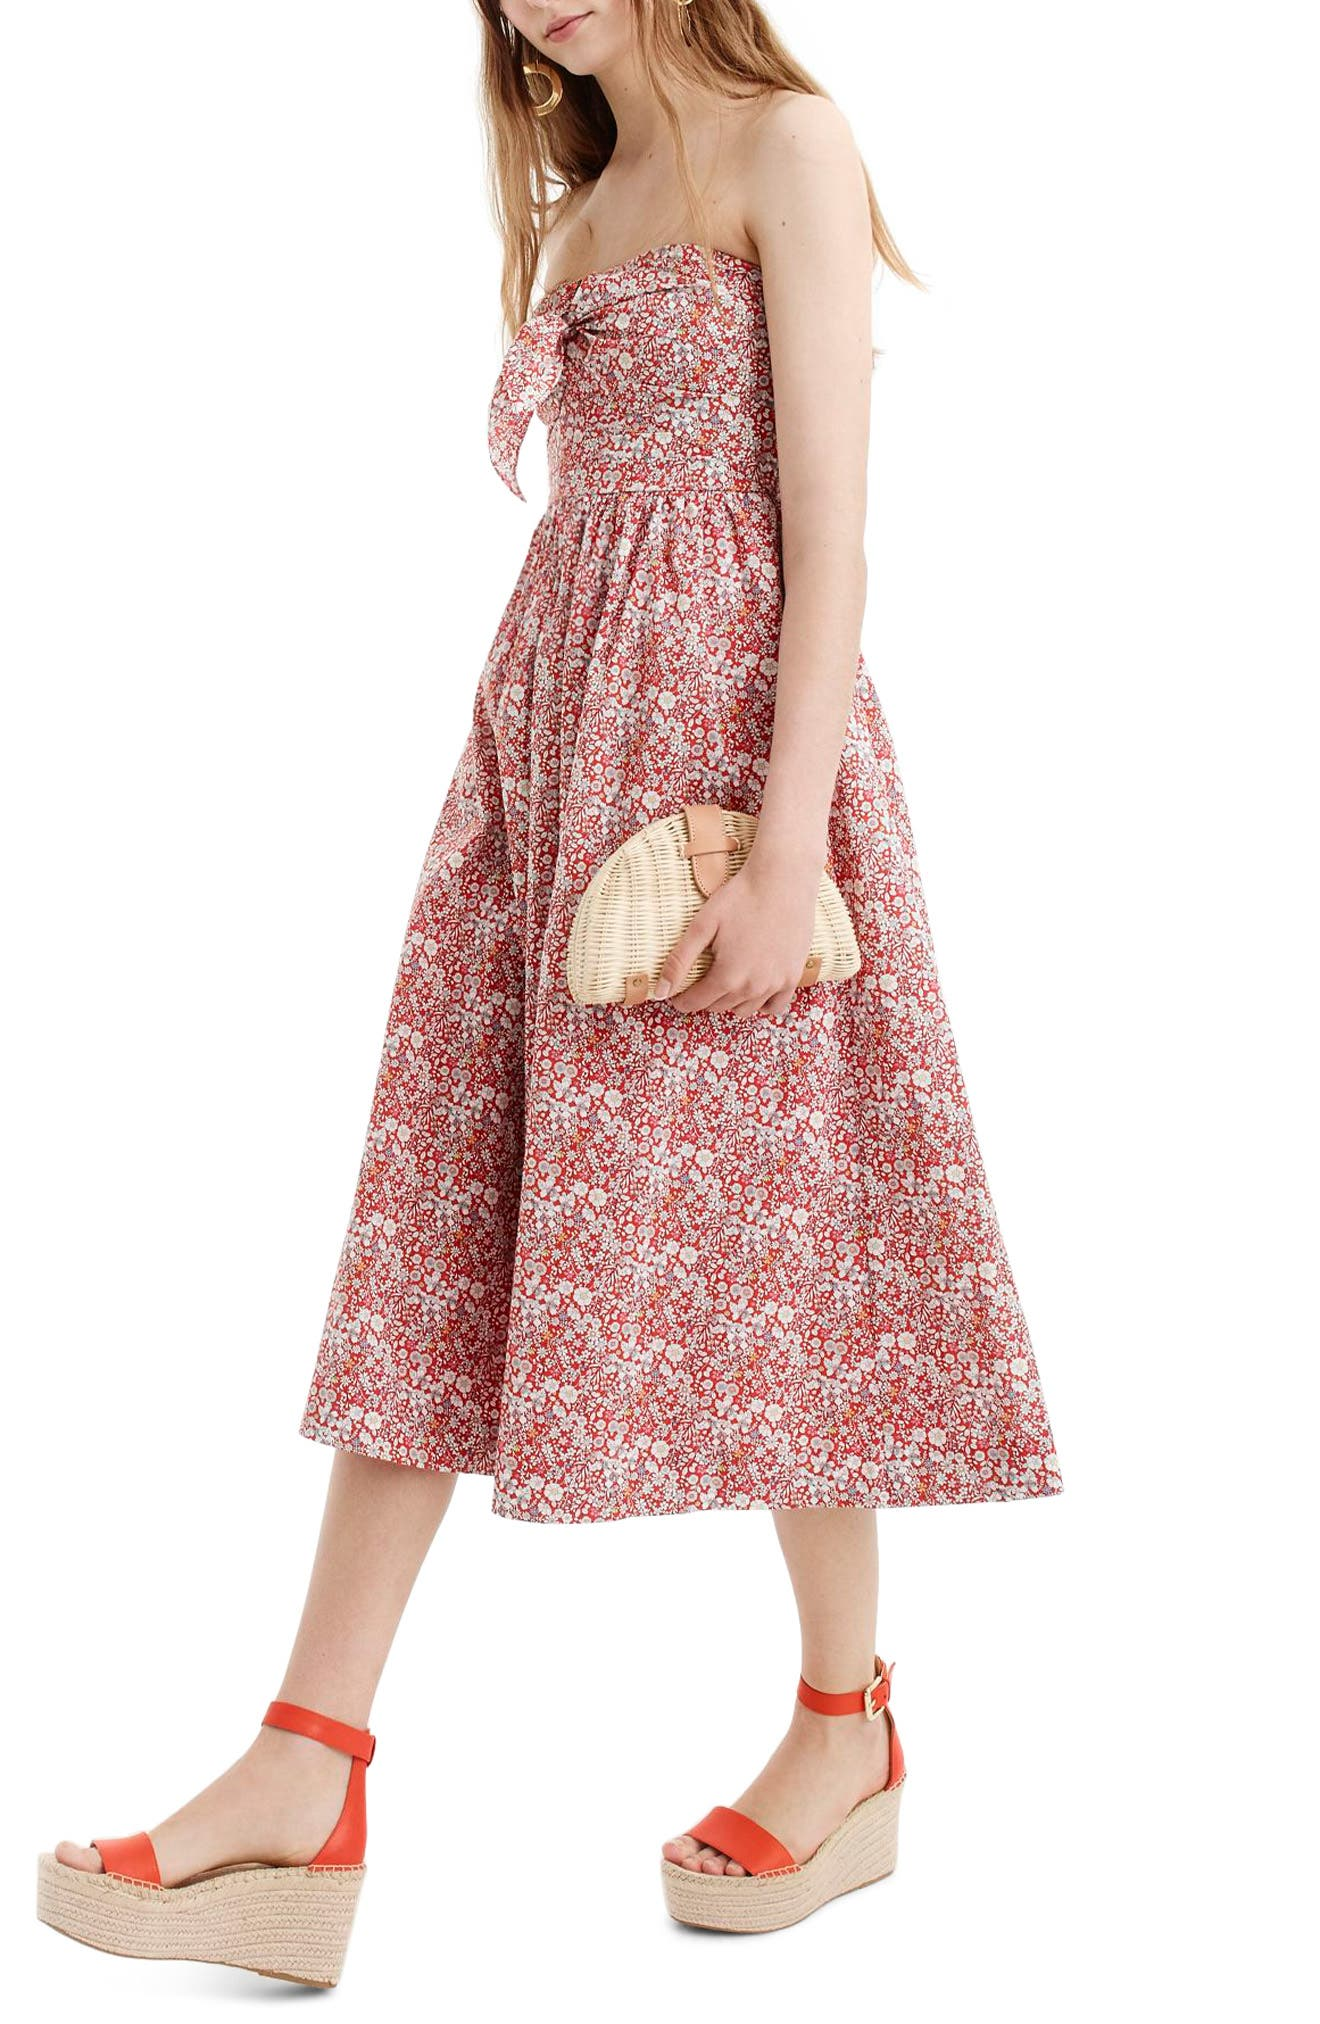 Liberty Tie Front Strapless Dress,                         Main,                         color, 600